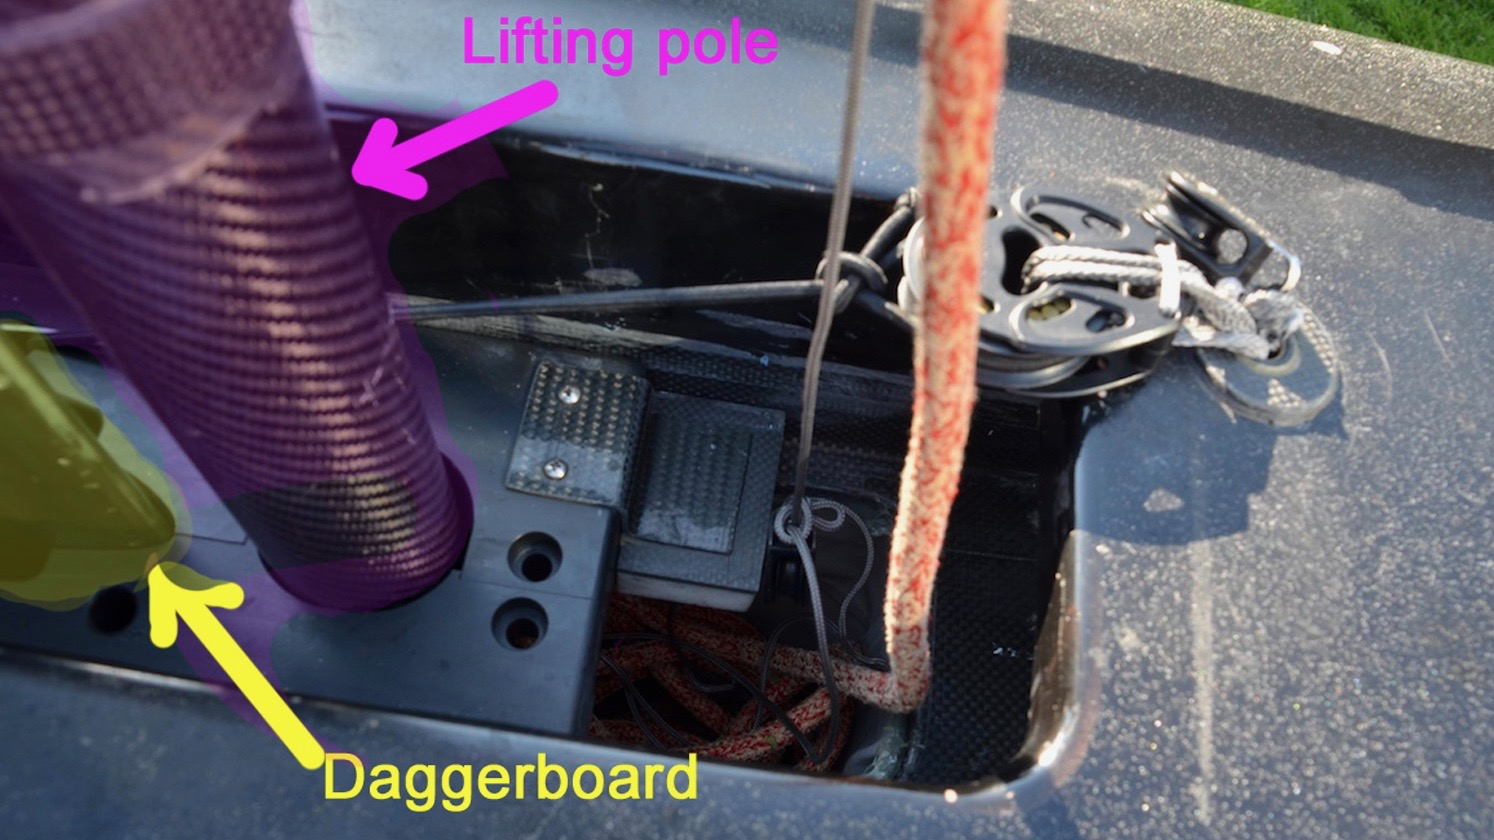 America's Cup 2013 - Oracle's experimental AC45 daggerboard cage with rake and cant controls